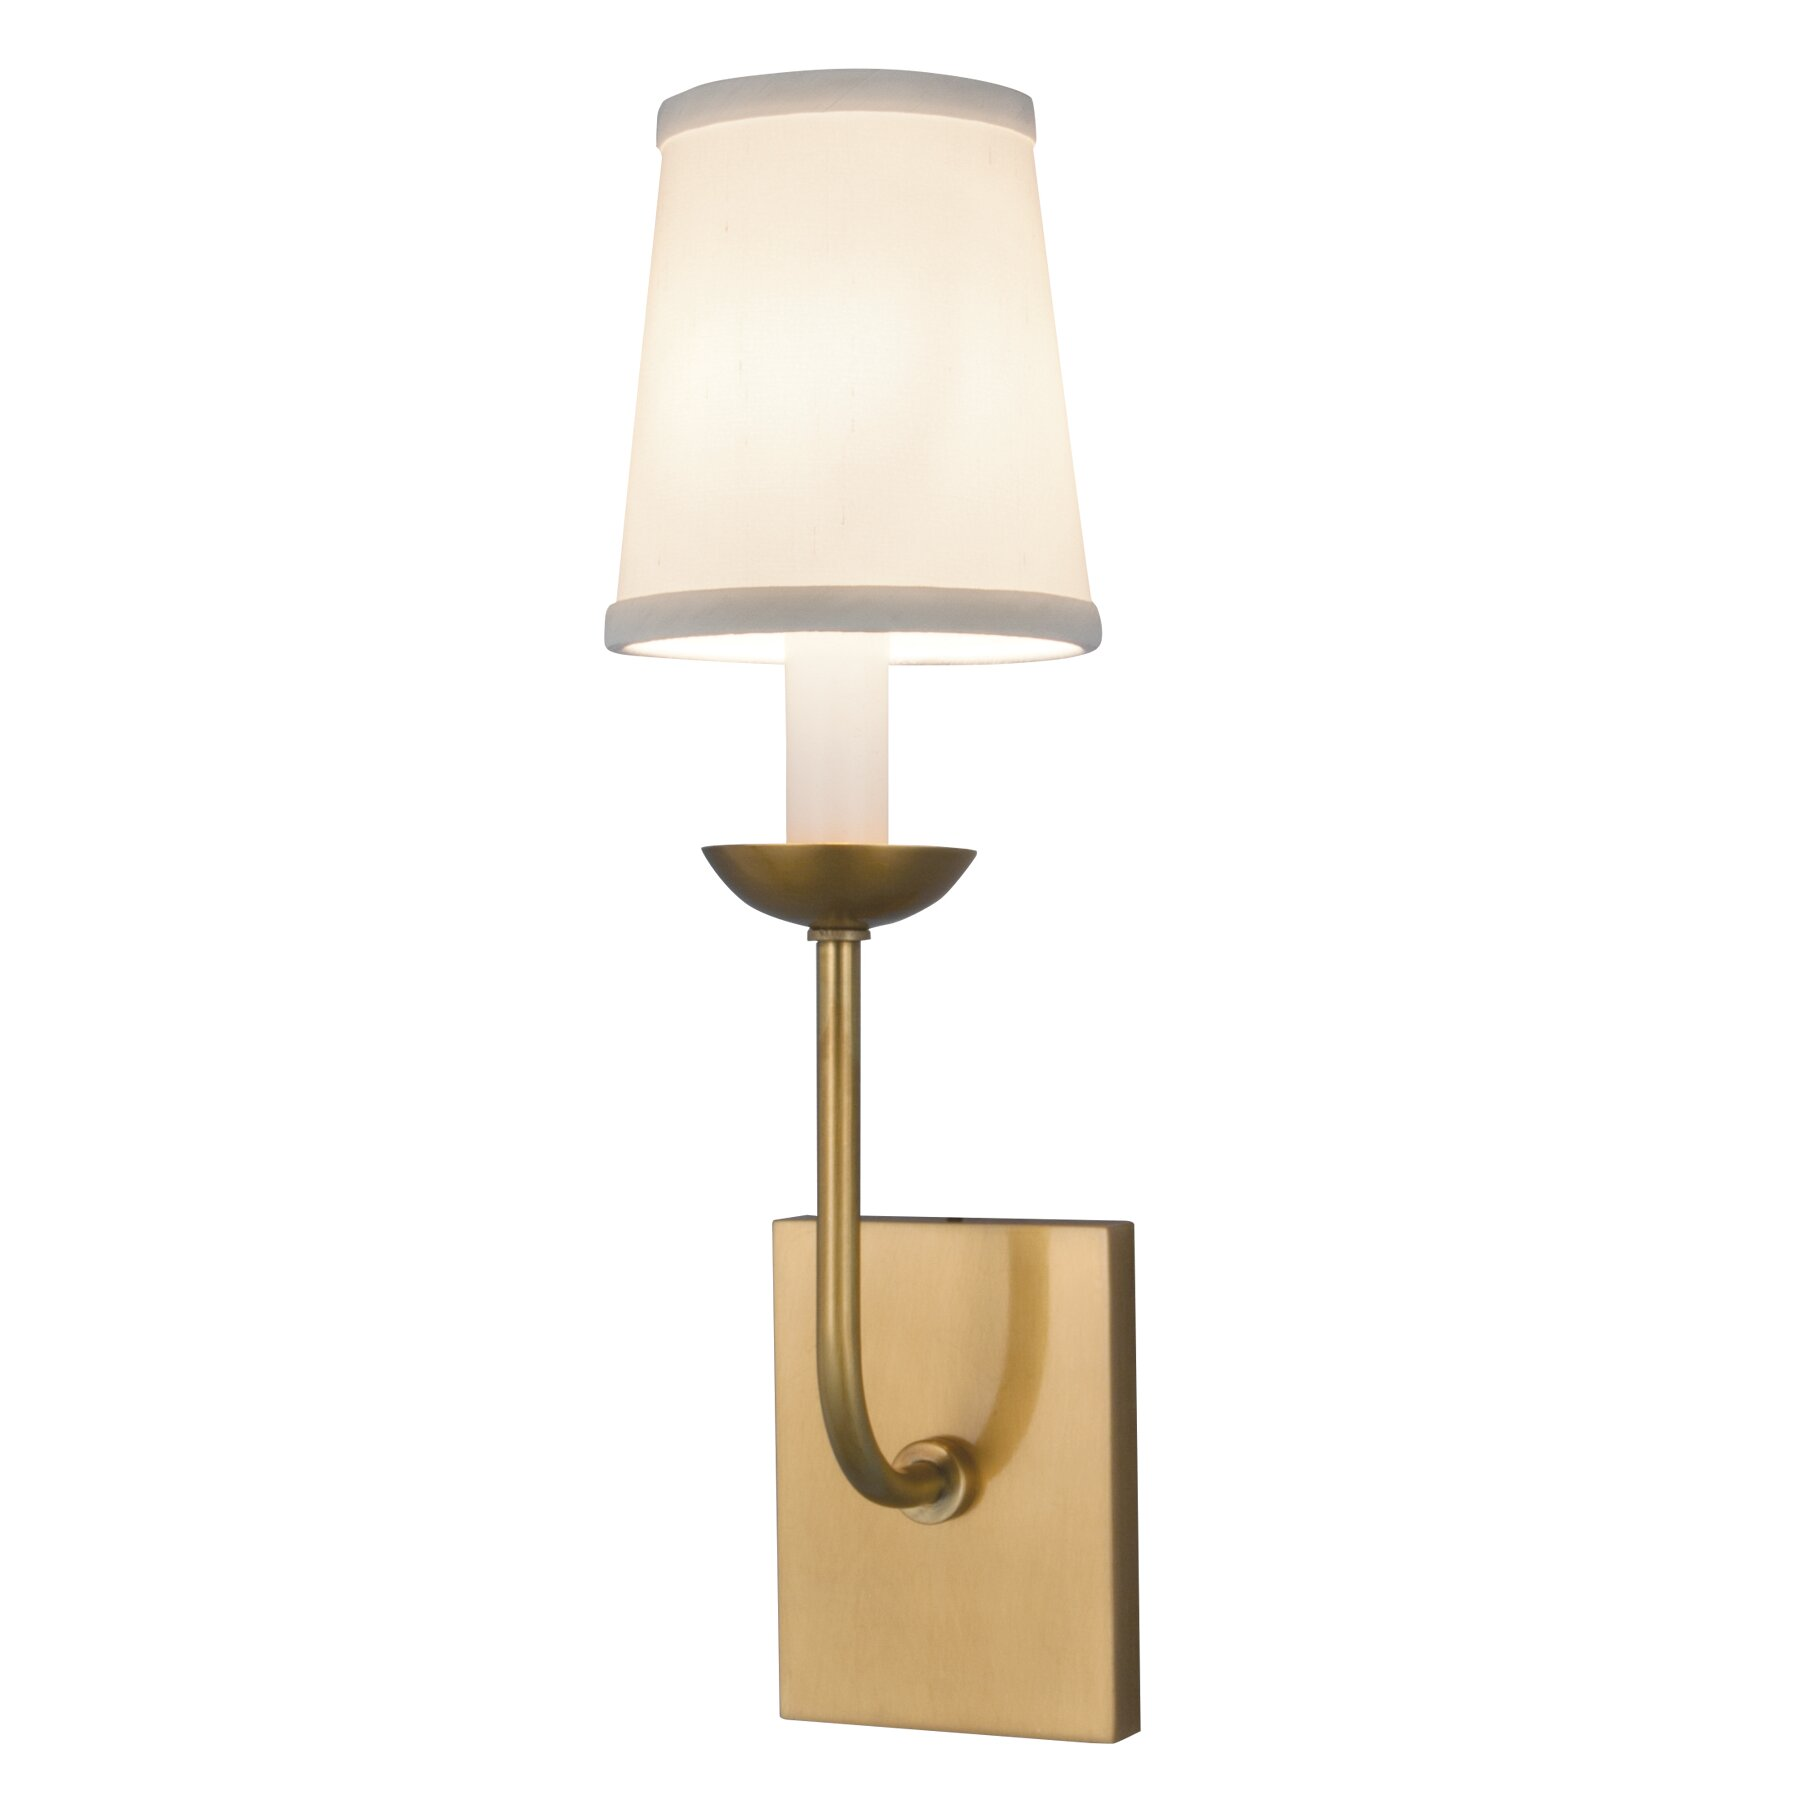 Wall Sconces At Wayfair : Norwell Lighting Circa 1 Light Wall Sconce & Reviews Wayfair